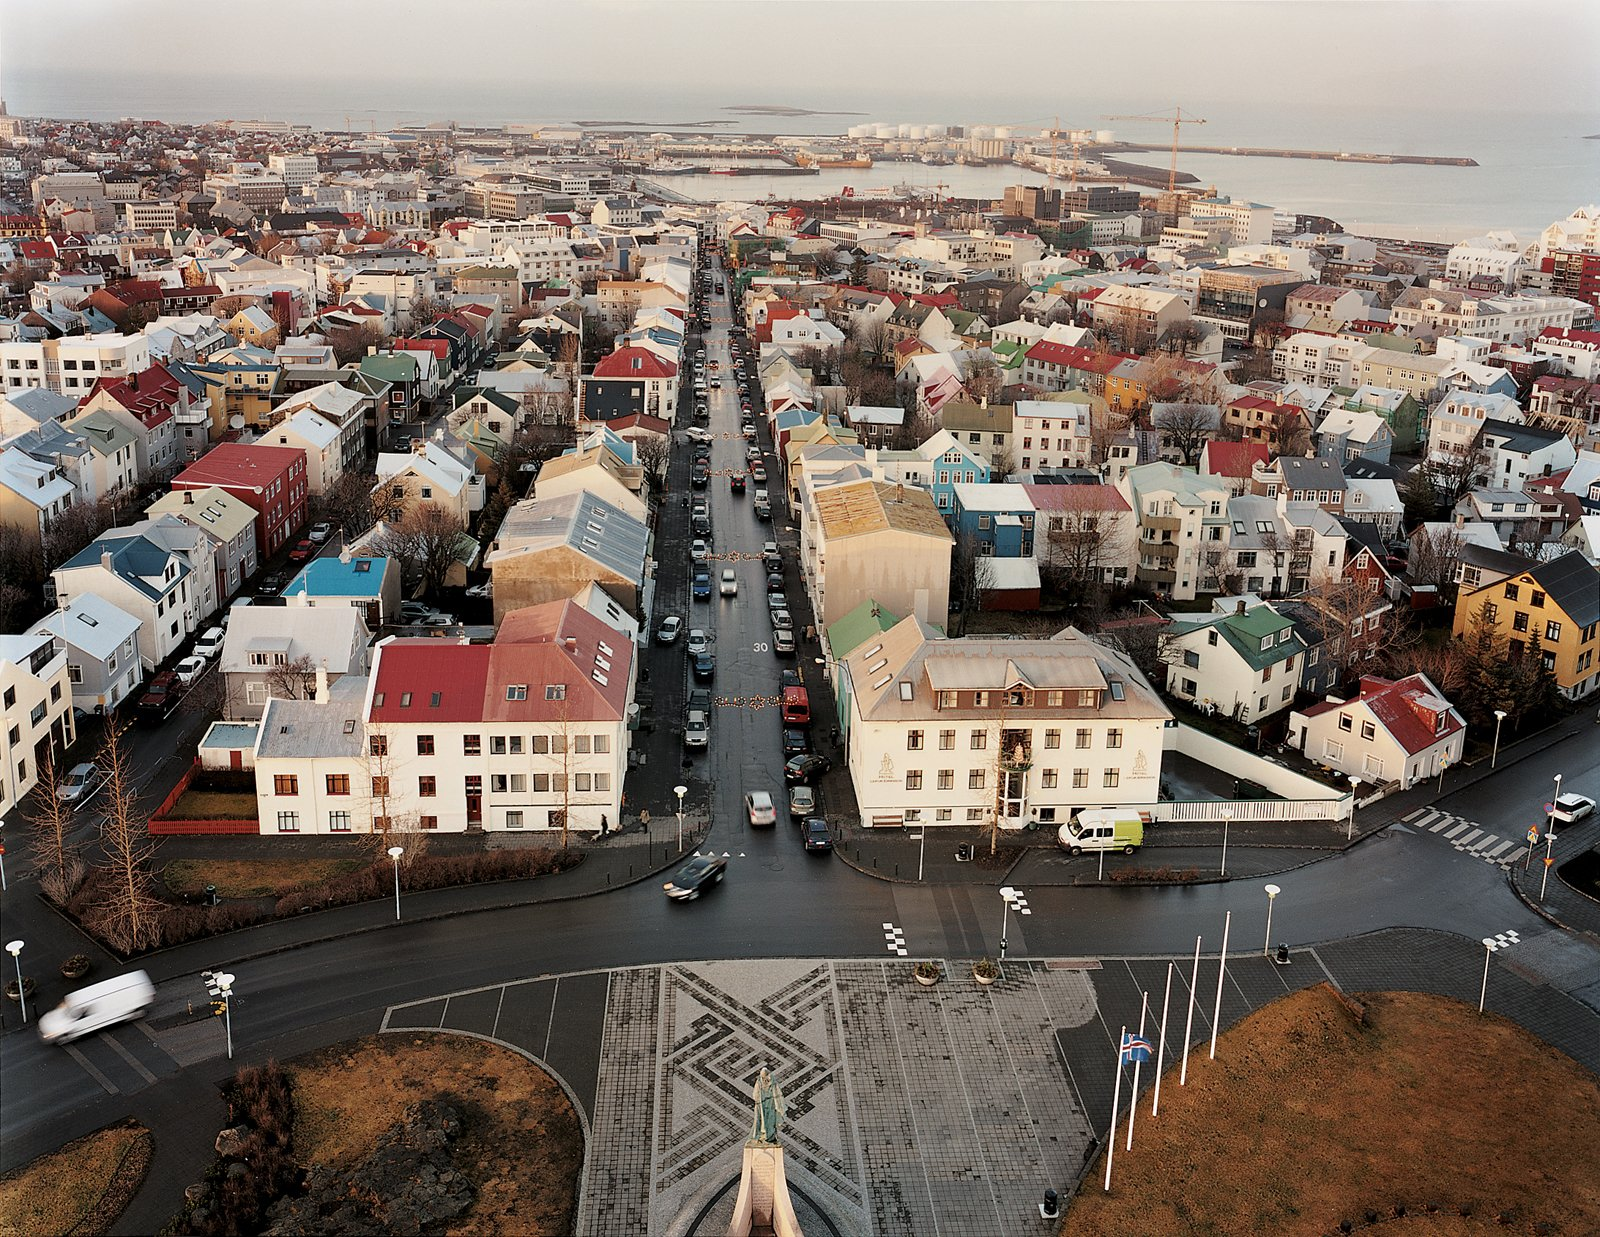 """Nearly two-thirds of Iceland's population of 300,000 lives in the greater Reykjavík area. The city's name means """"smoky bay."""" The view of the waterfront shows the rational architectural pragmatism that holds sway in much of the country.  Photo 2 of 13 in Reykjavík, Iceland"""